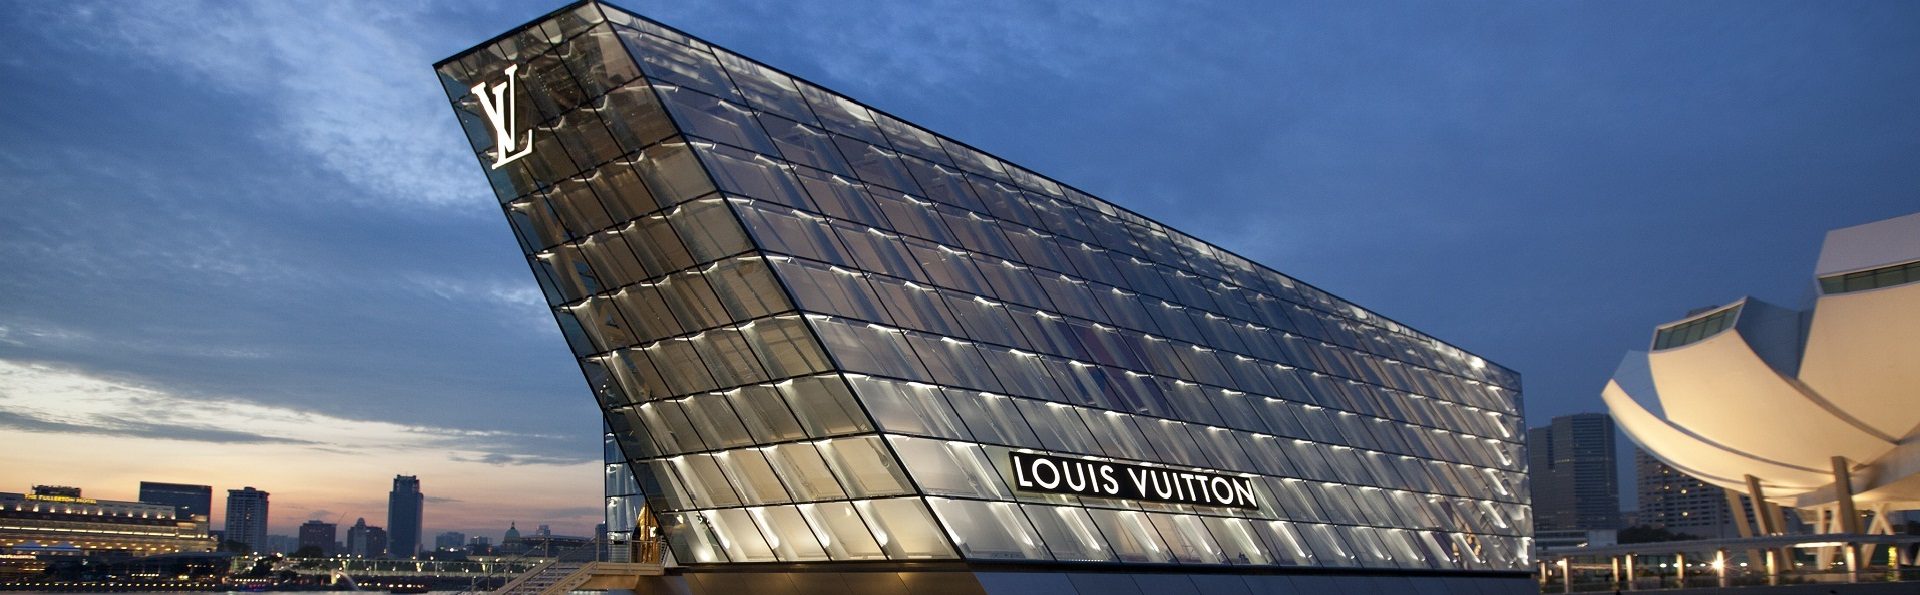 Louis Vuitton, often known as LV, was founded more than a century ago, making it one of the oldest fashion brands still successfully operating today. People say that with age, comes wisdom, and in Louis Vuitton's case, age was followed by a myriad of iconic LV bags, luggage, and more.